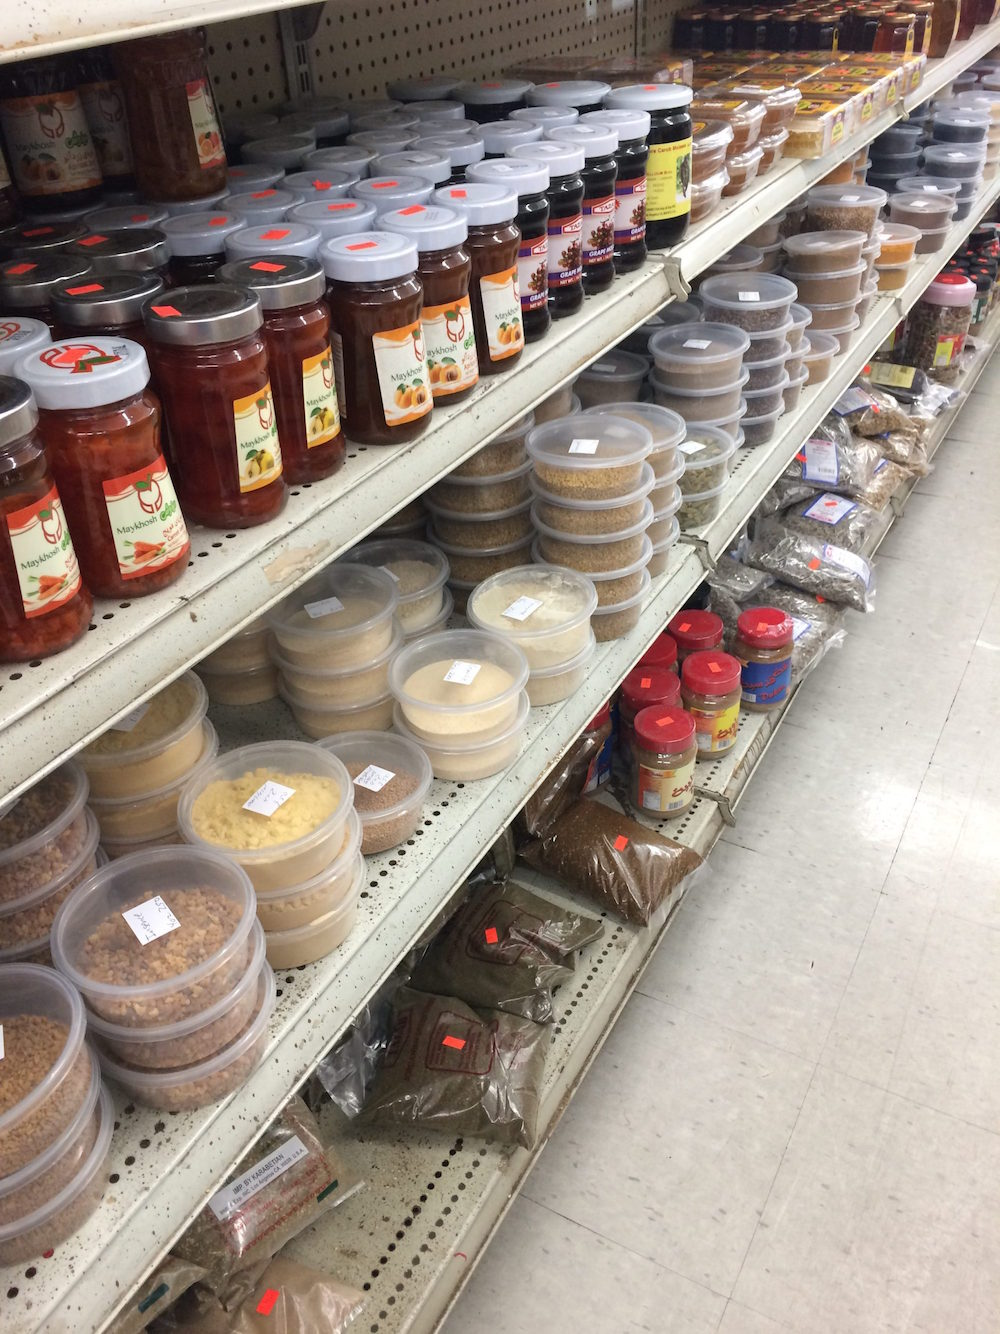 Spices!!! If there is a specific Middle Eastern spice you're looking for, I'm sure Fresno Deli has it.